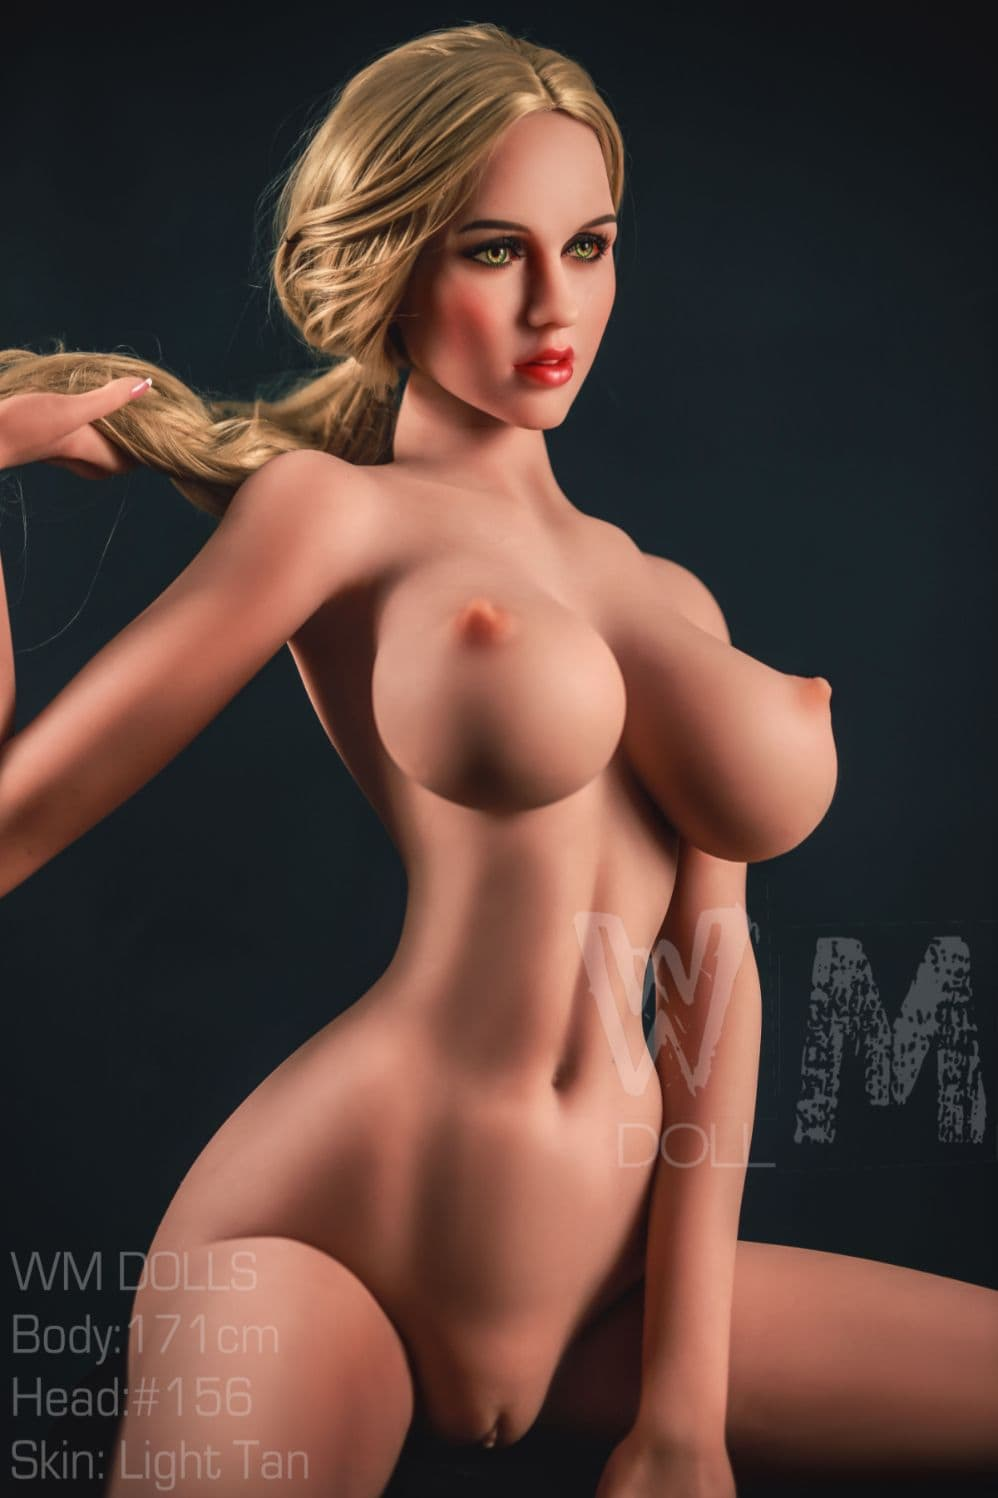 ana 171cm 5ft6 blonde fantasy big boobs tpe wm sex doll(10)